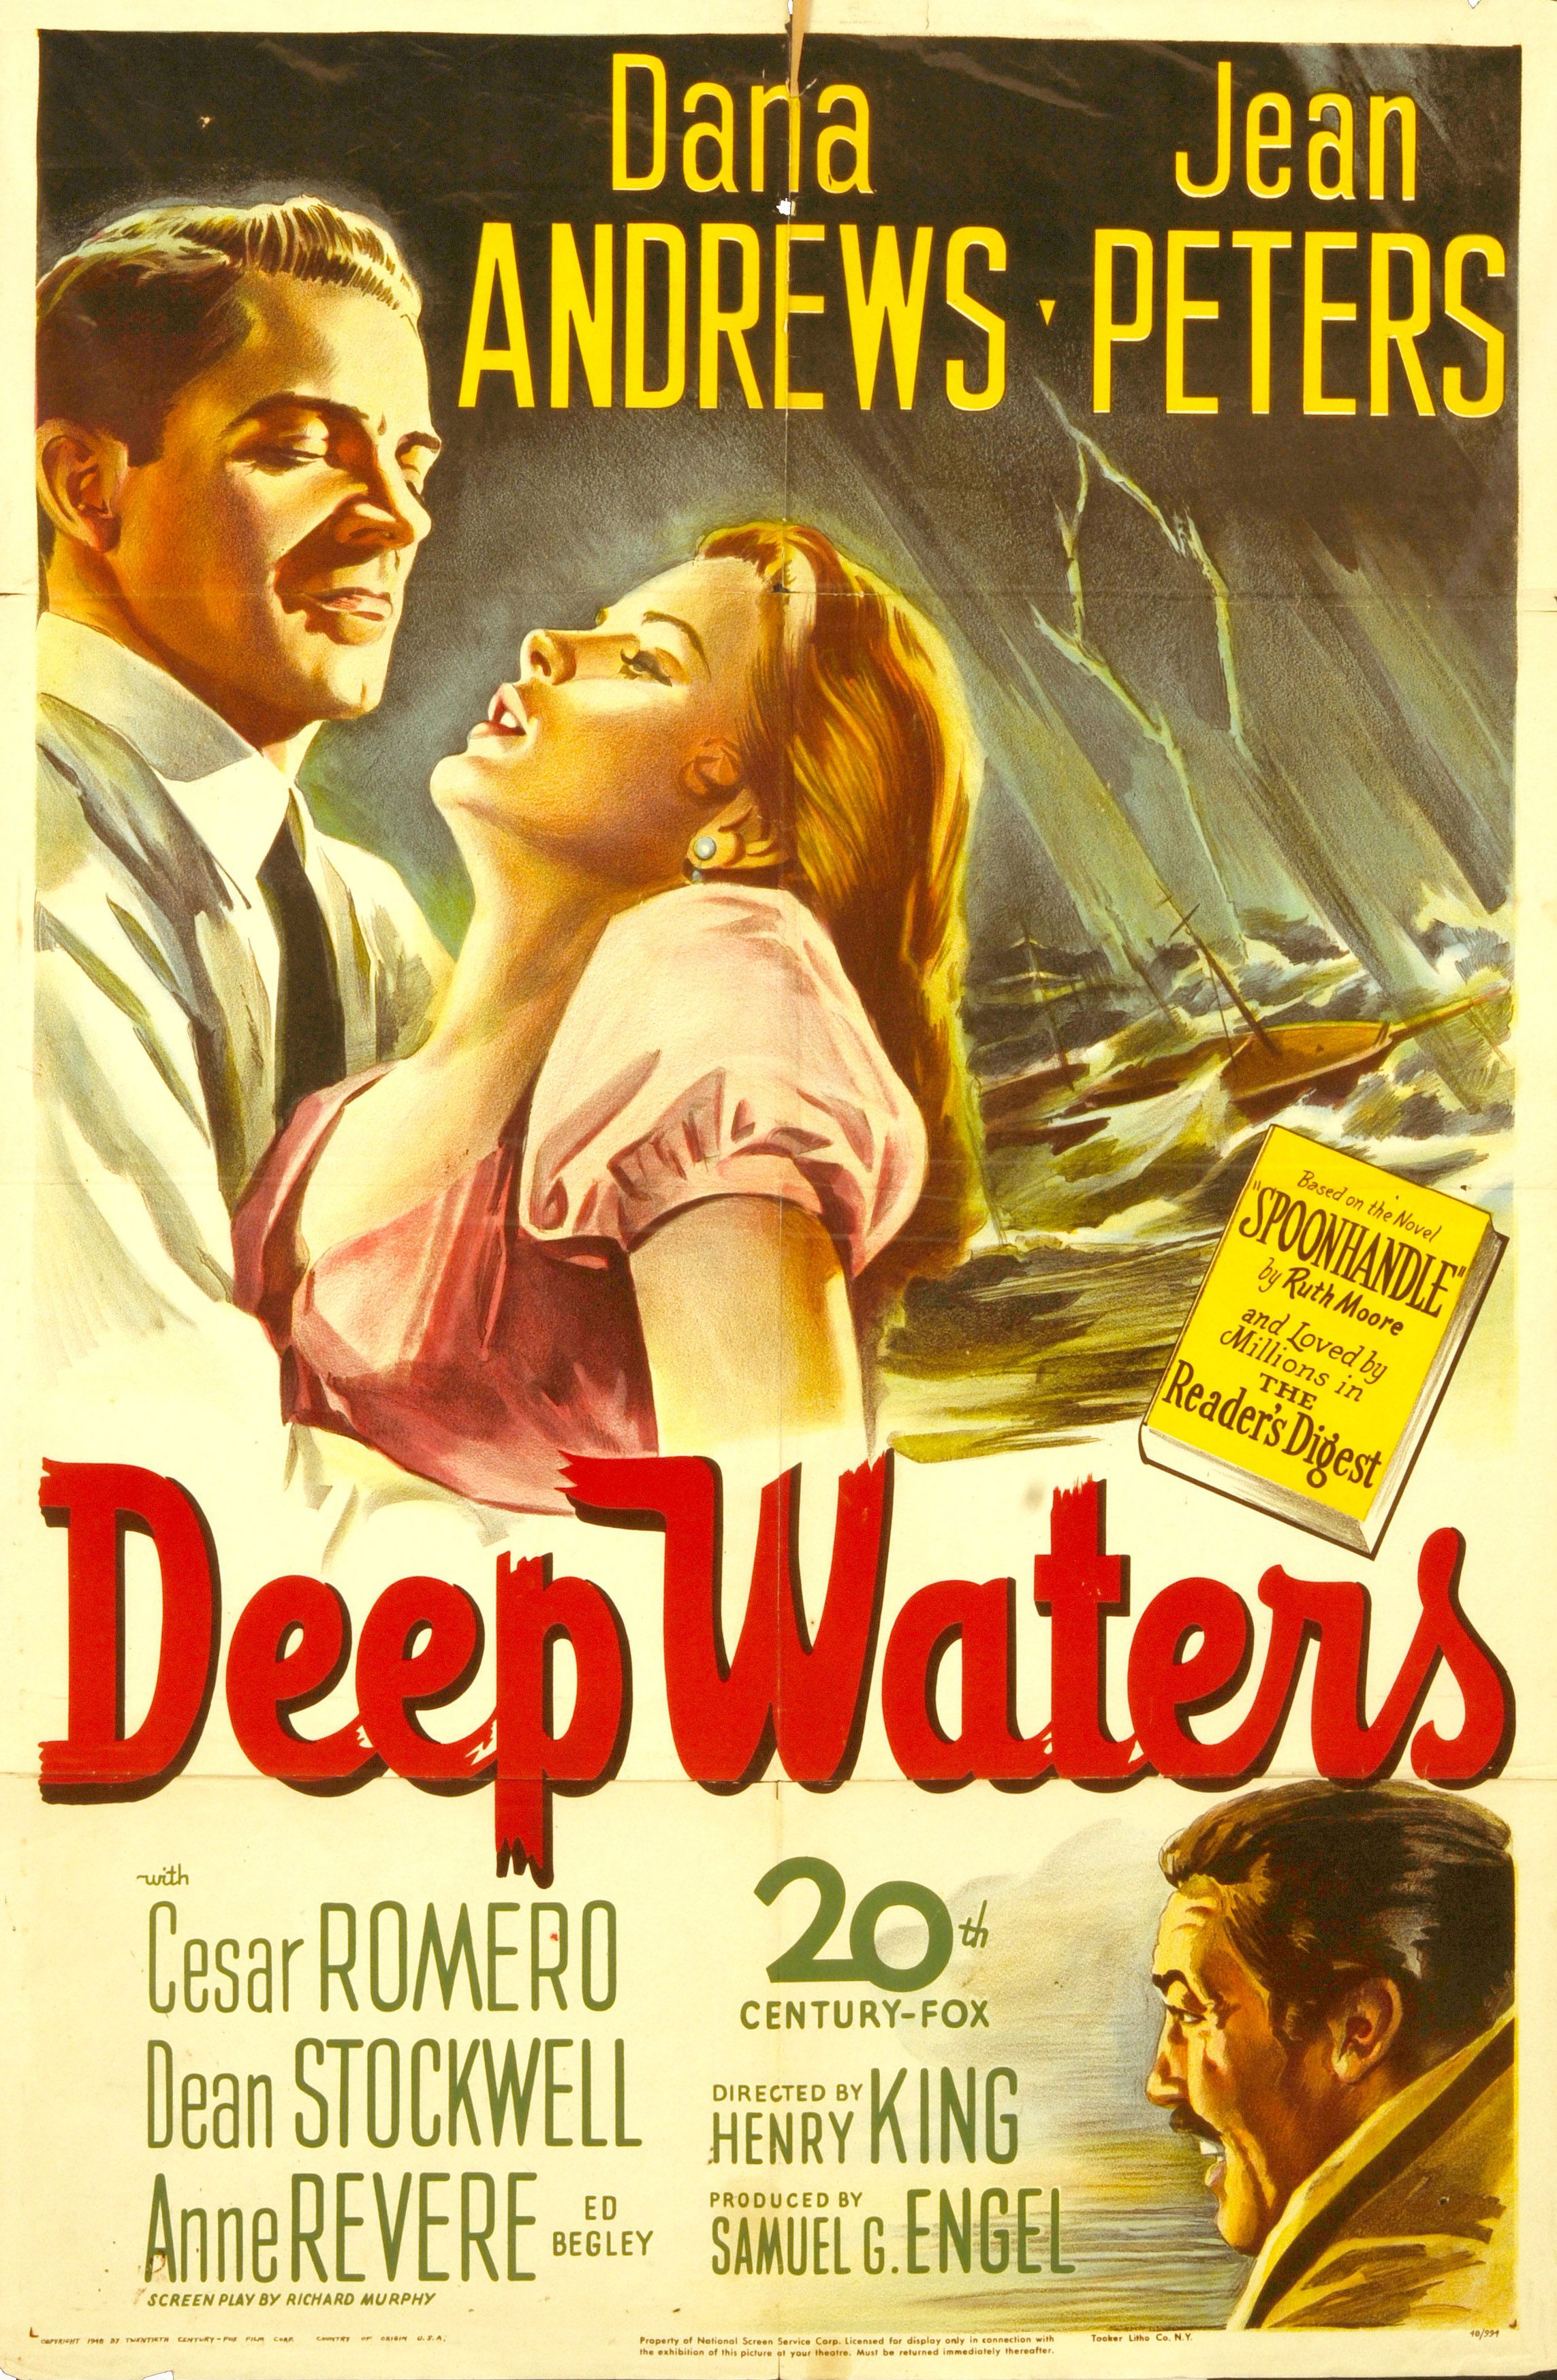 Retro Movie Poster Art - Deep Waters , Henry King 1948 - http ...